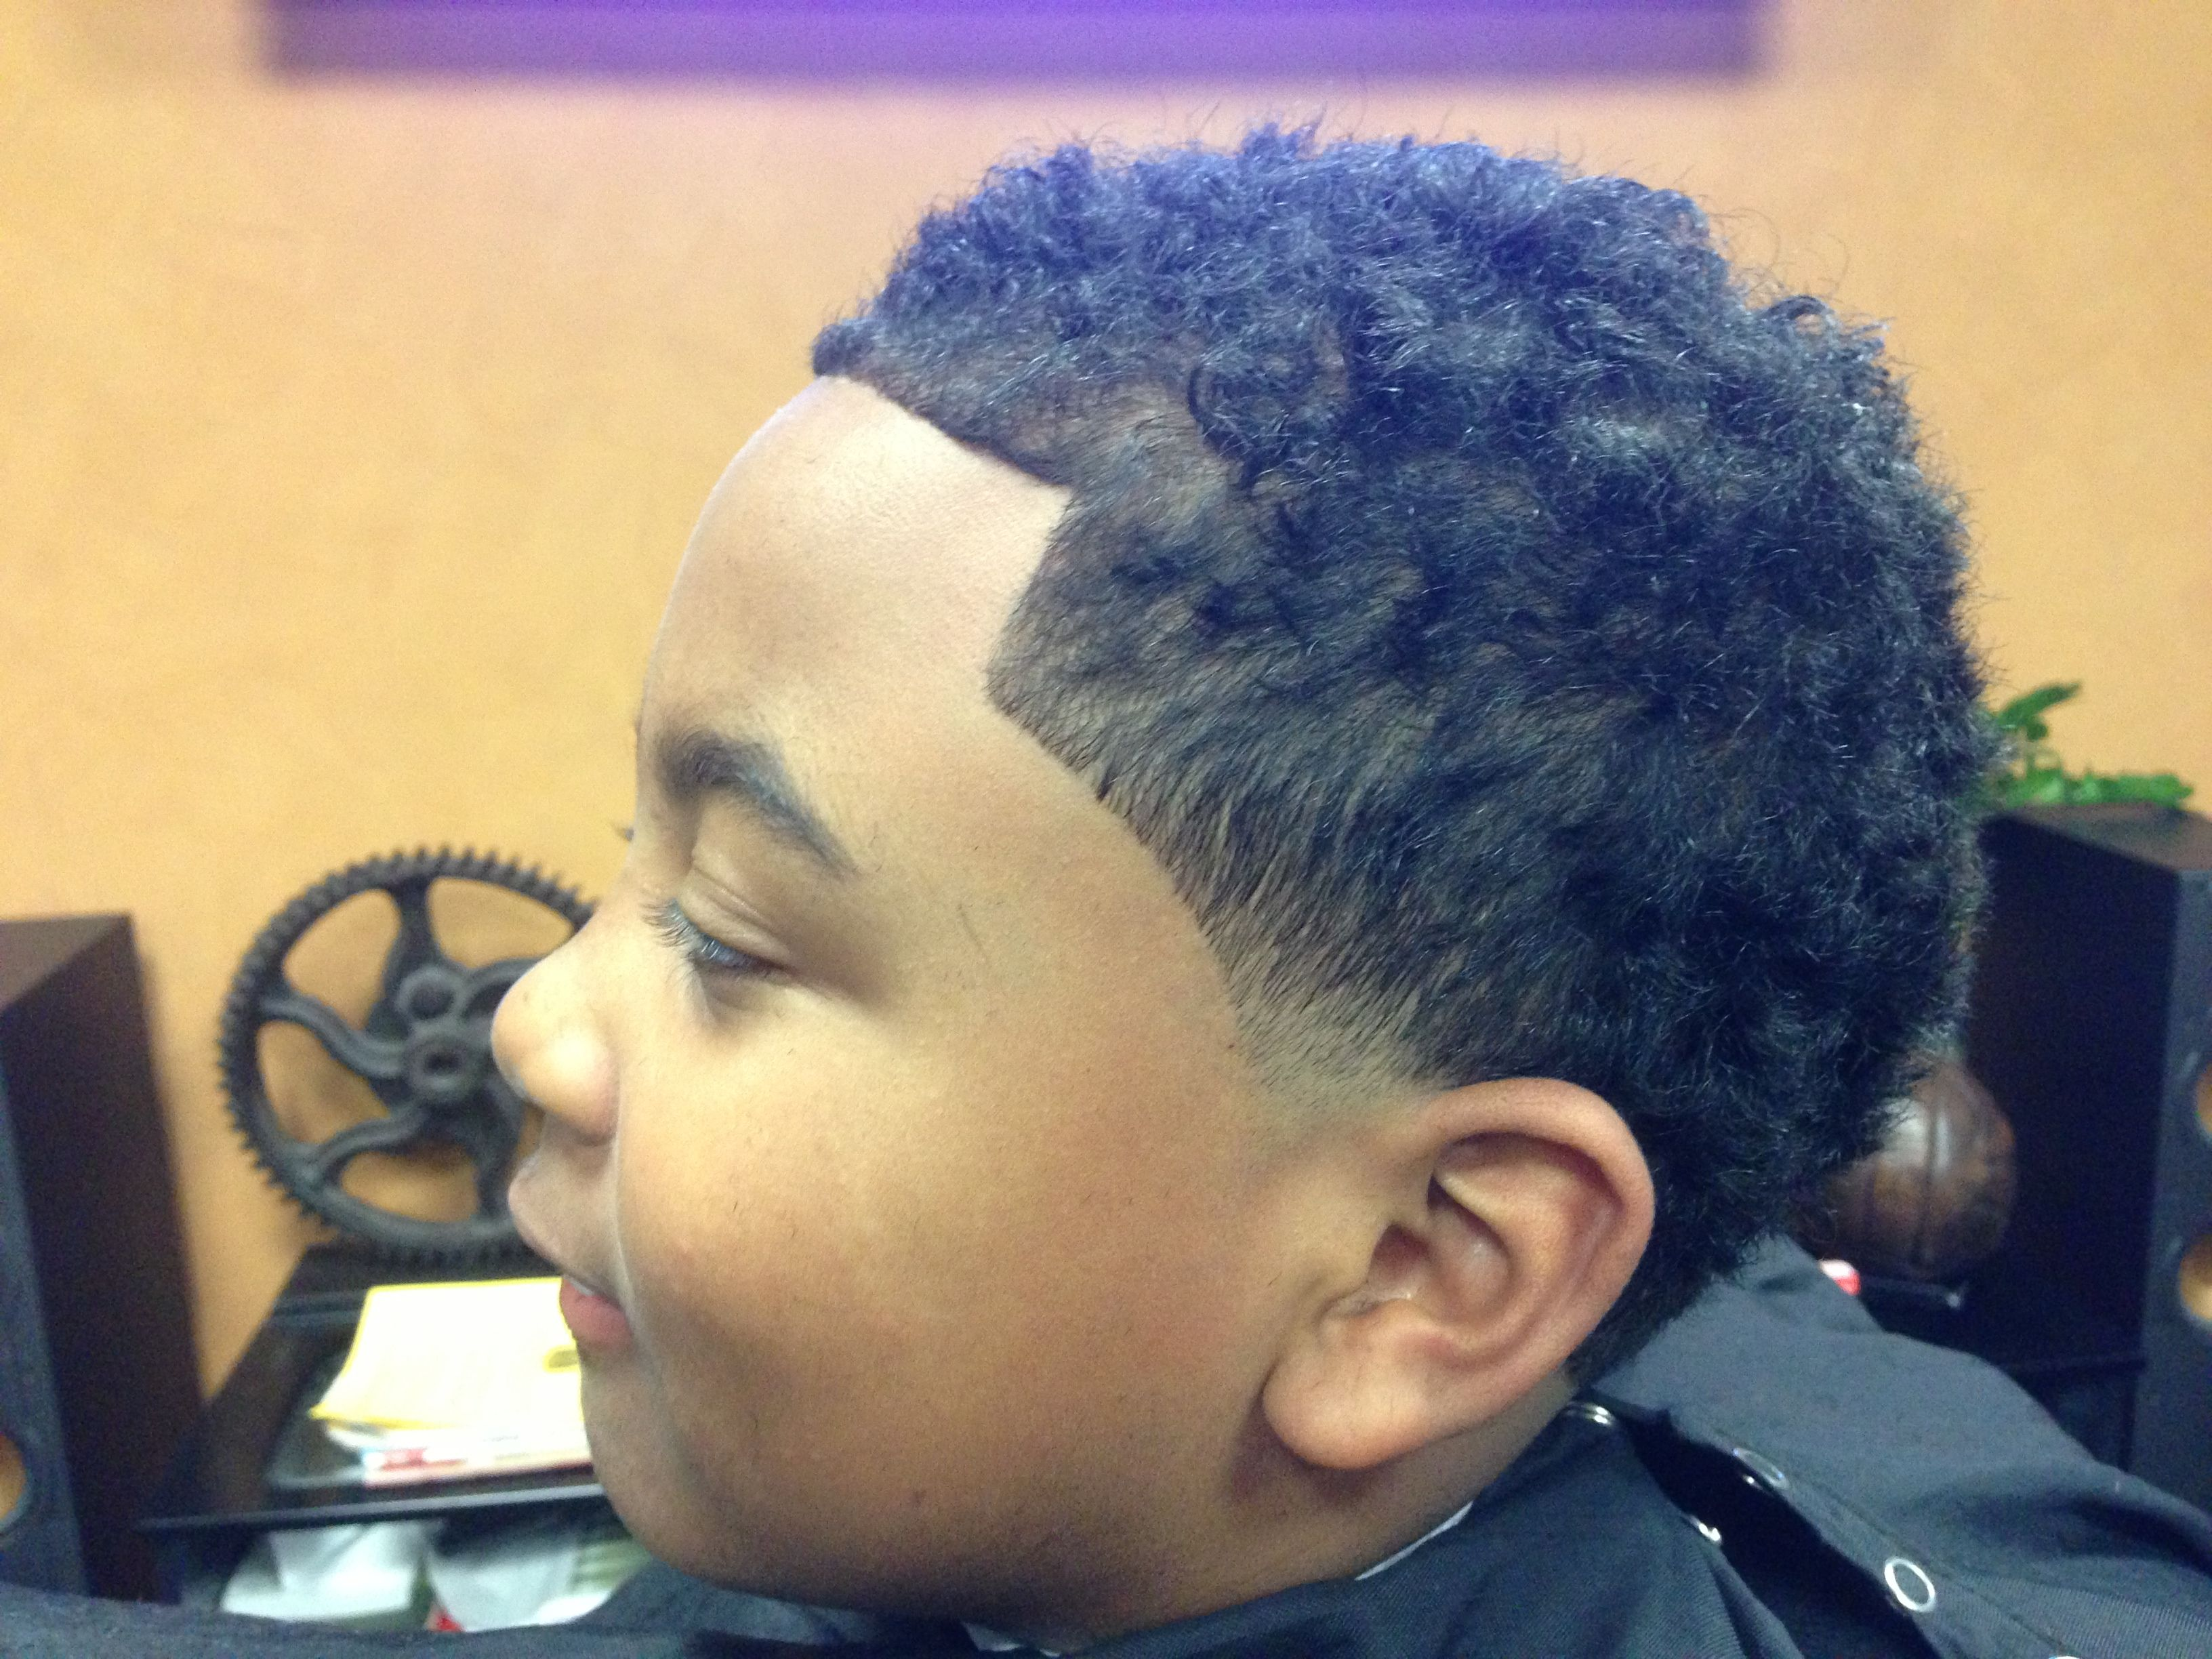 Toddler Curly Hairstyles Boys Haircuts For Curly Hair Toddler Boy Hair Pinterest Haircuts